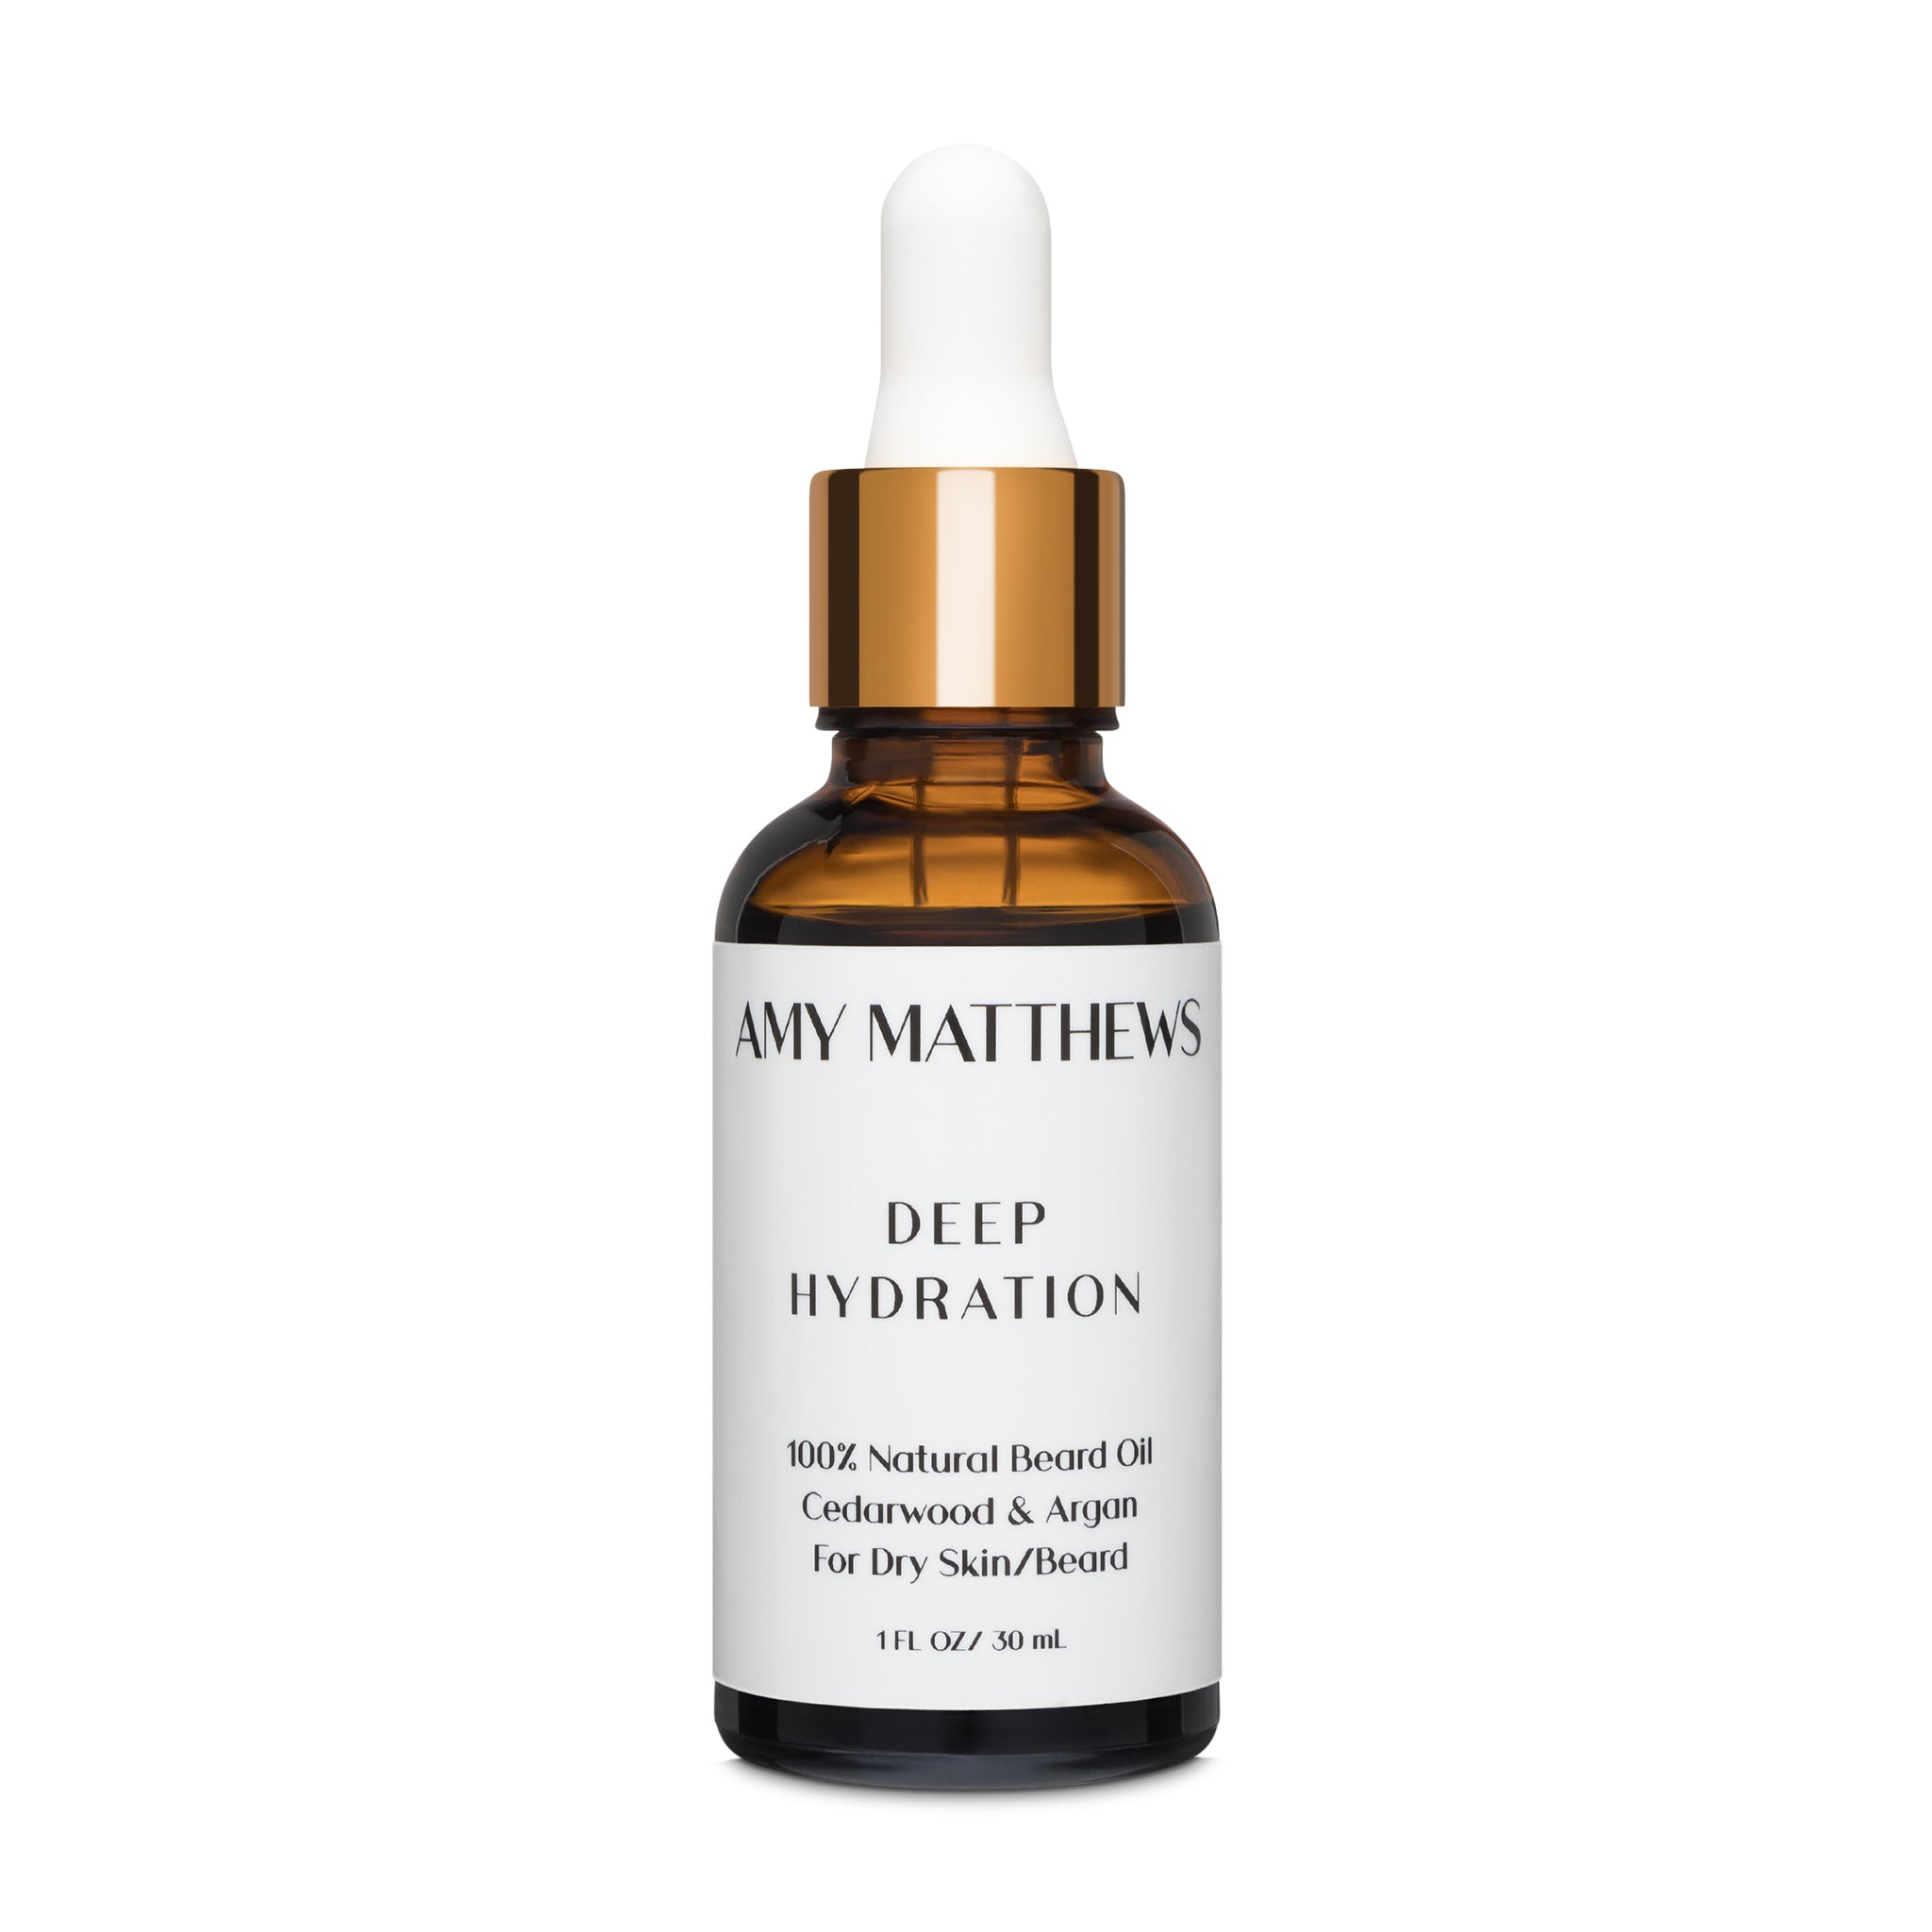 DEEP HYDRATION BEARD OIL